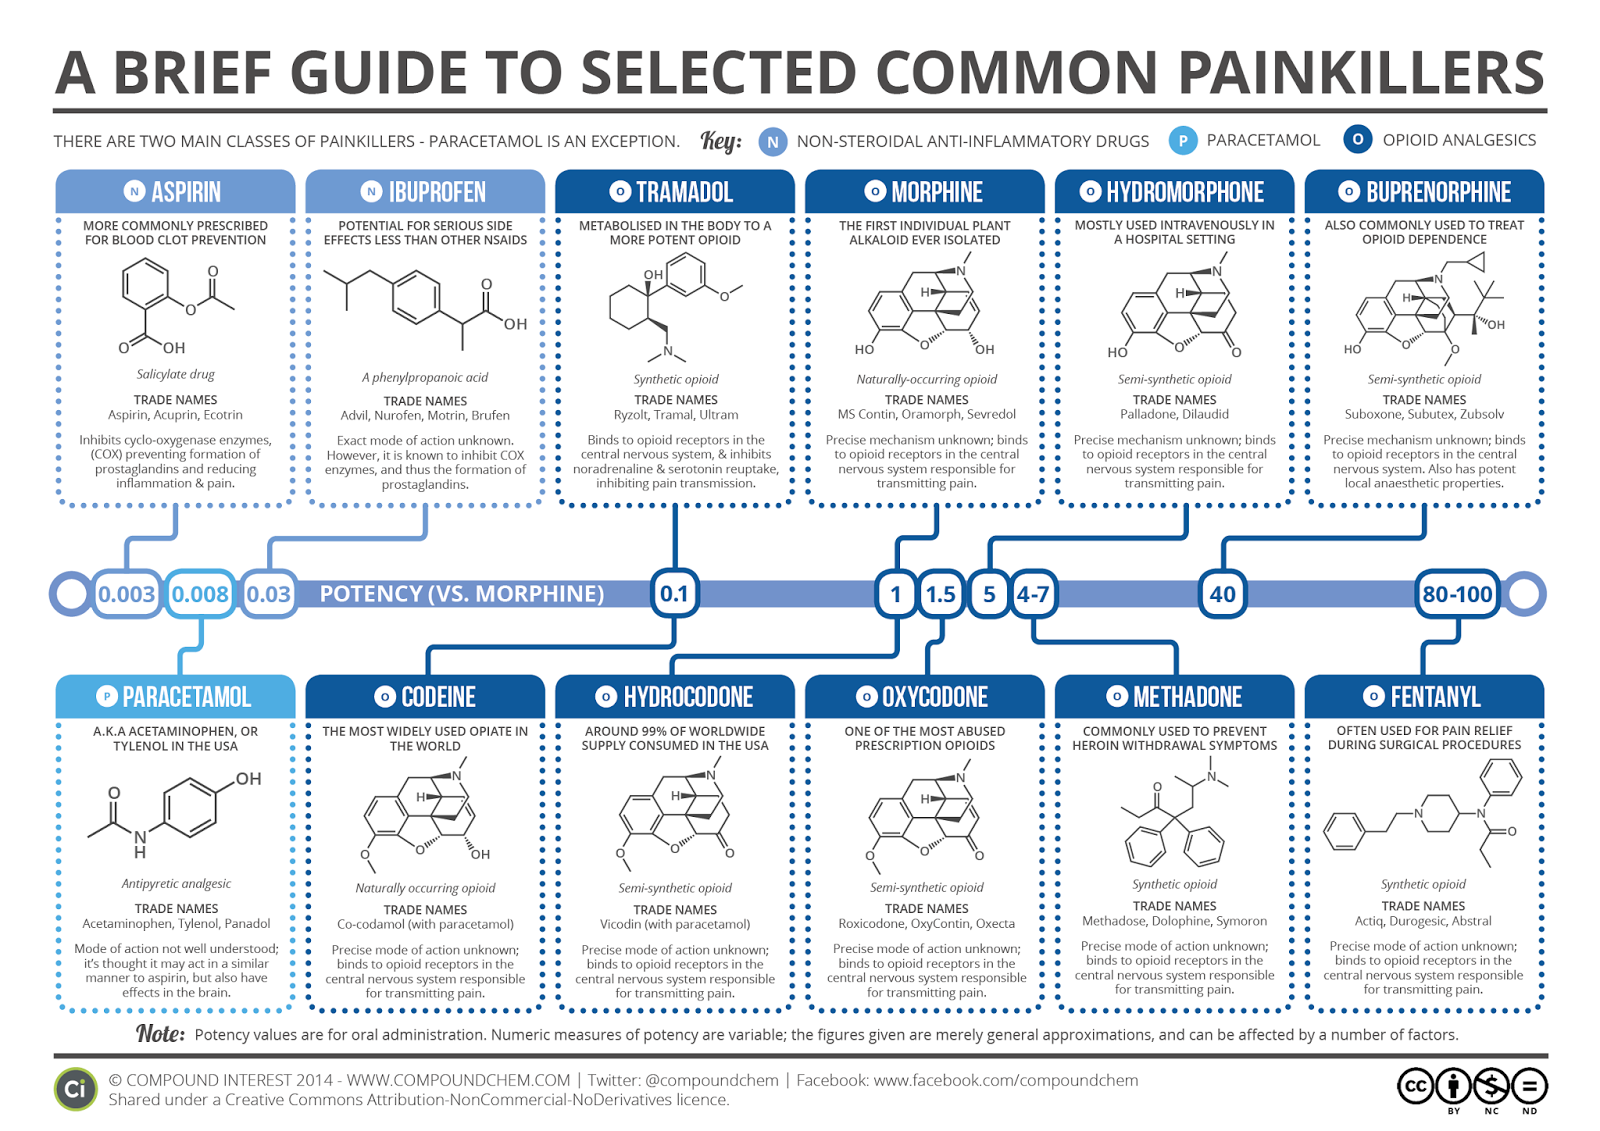 http://www.compoundchem.com/wp-content/uploads/2014/09/Brief-Guide-to-Common-Painkillers-Oct-14.png